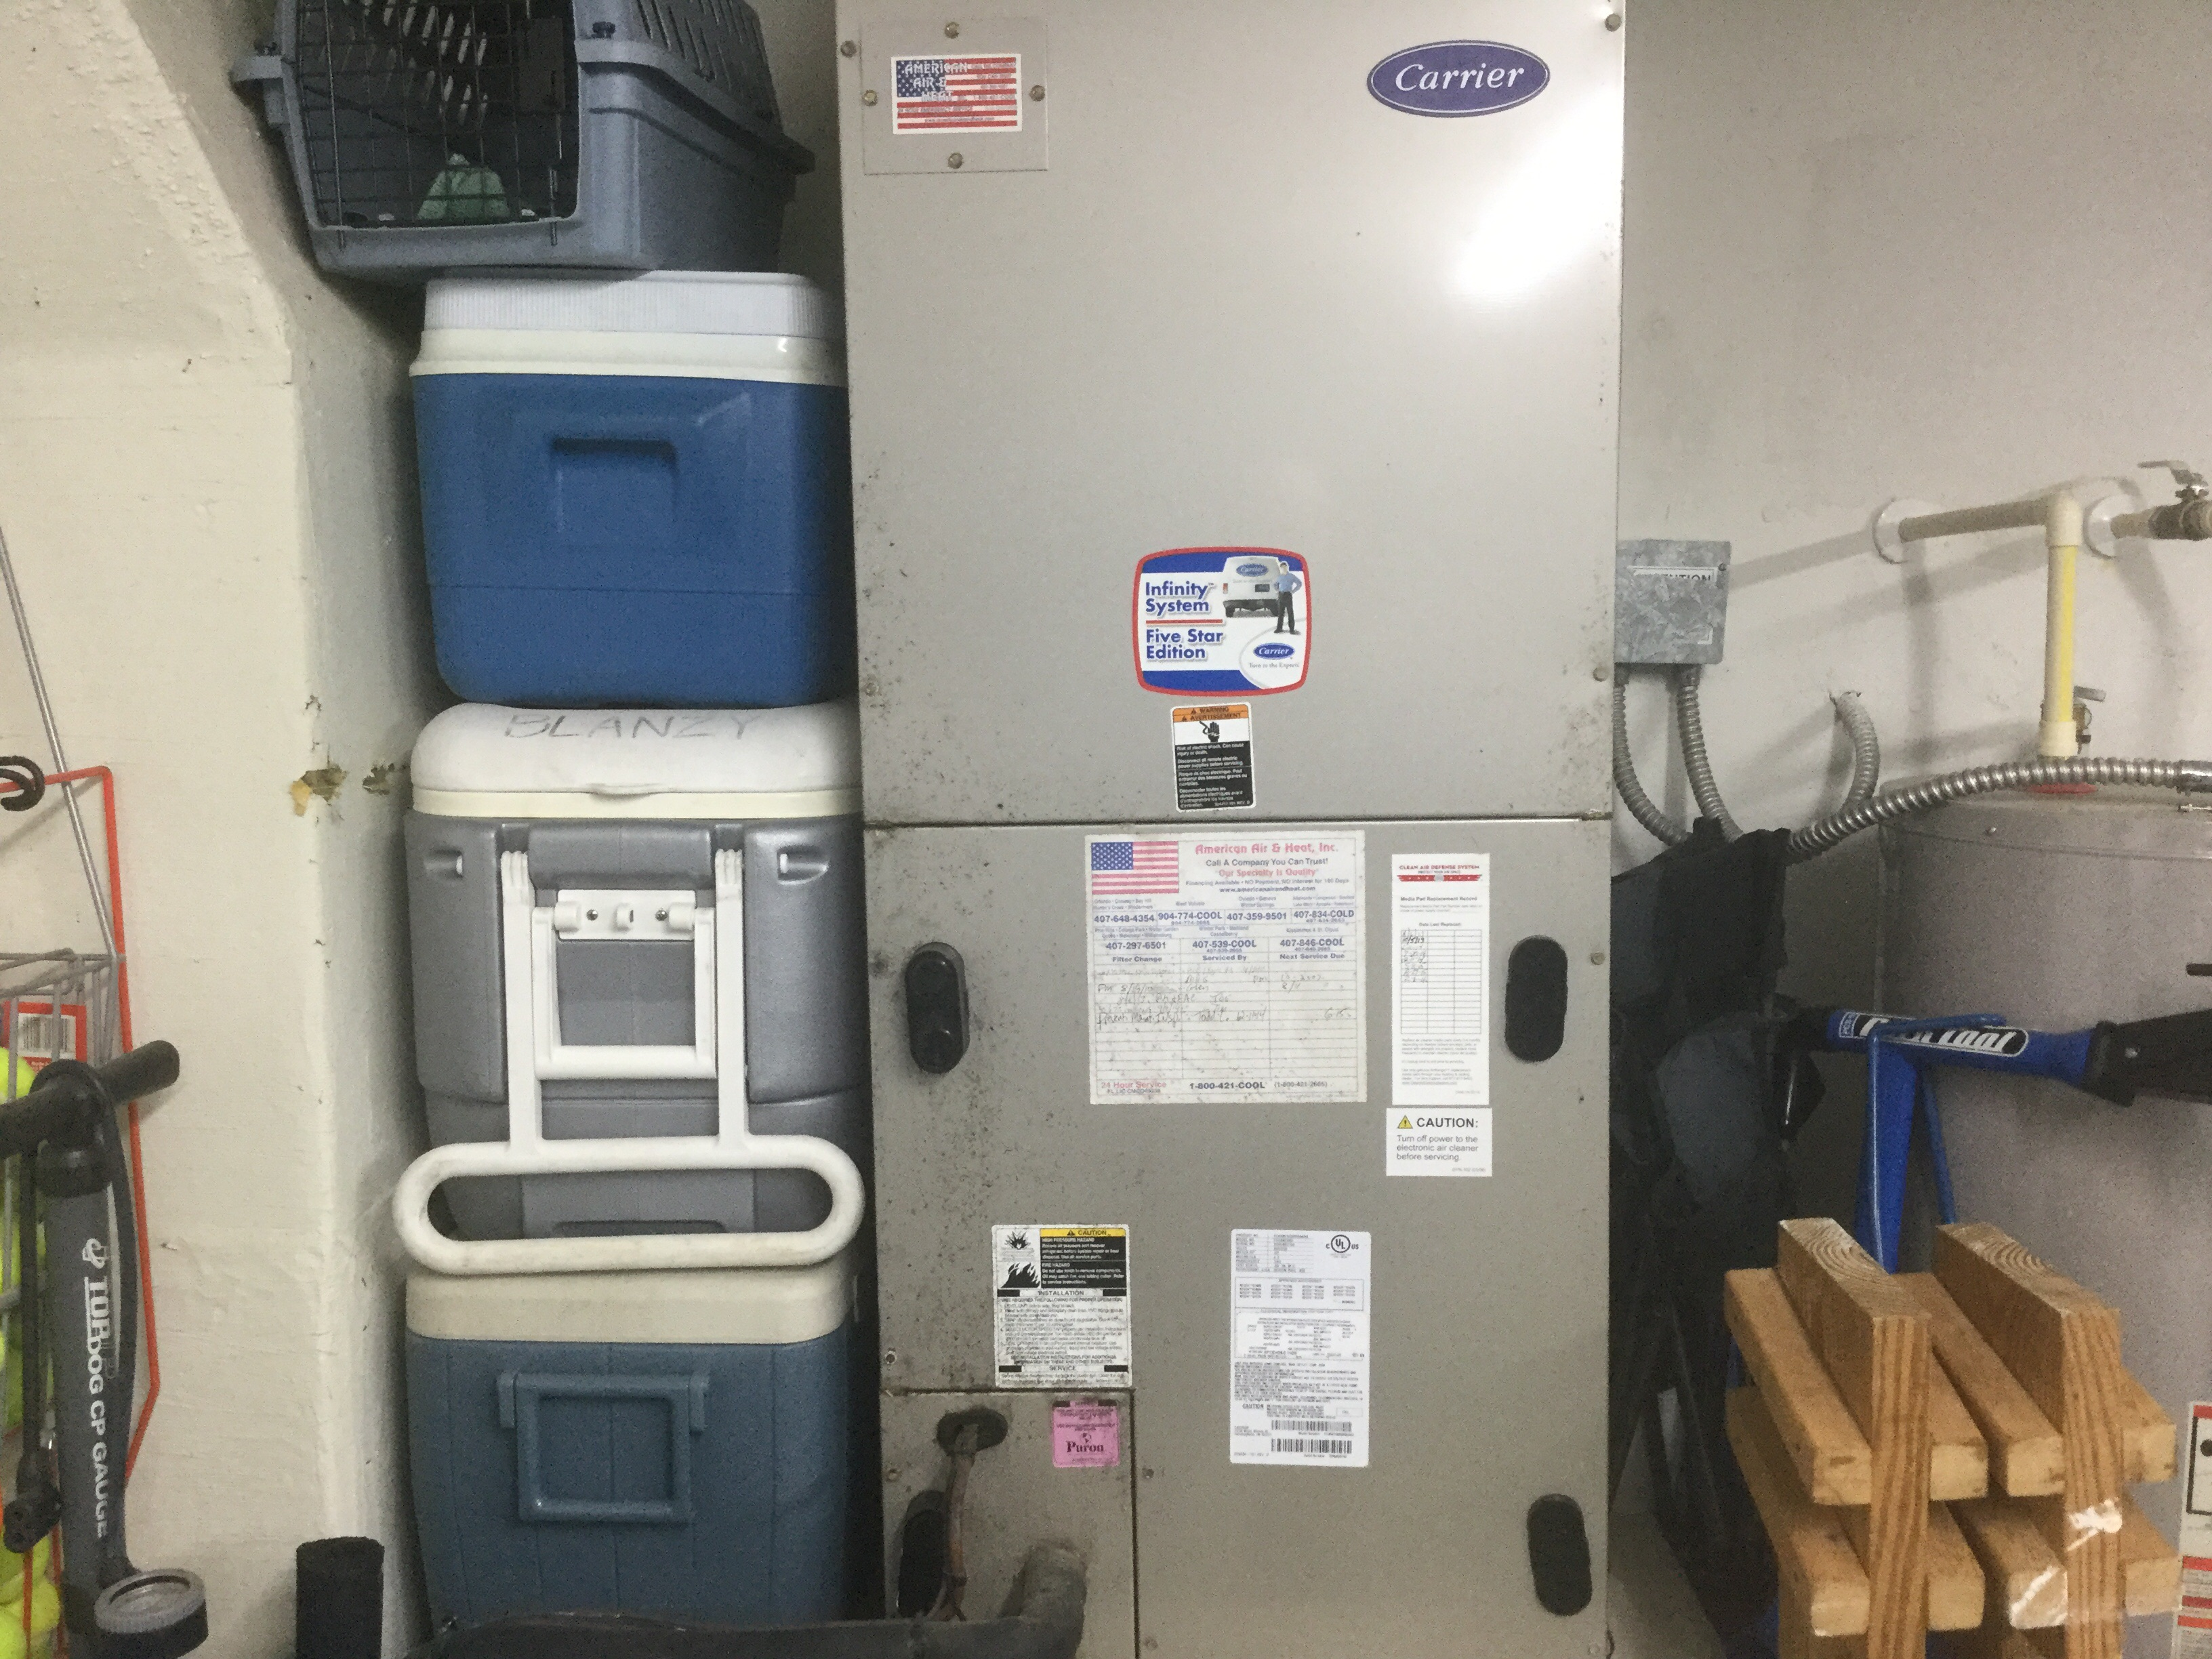 I have a Carrier Infinity System for heating/cooling  I pushed the